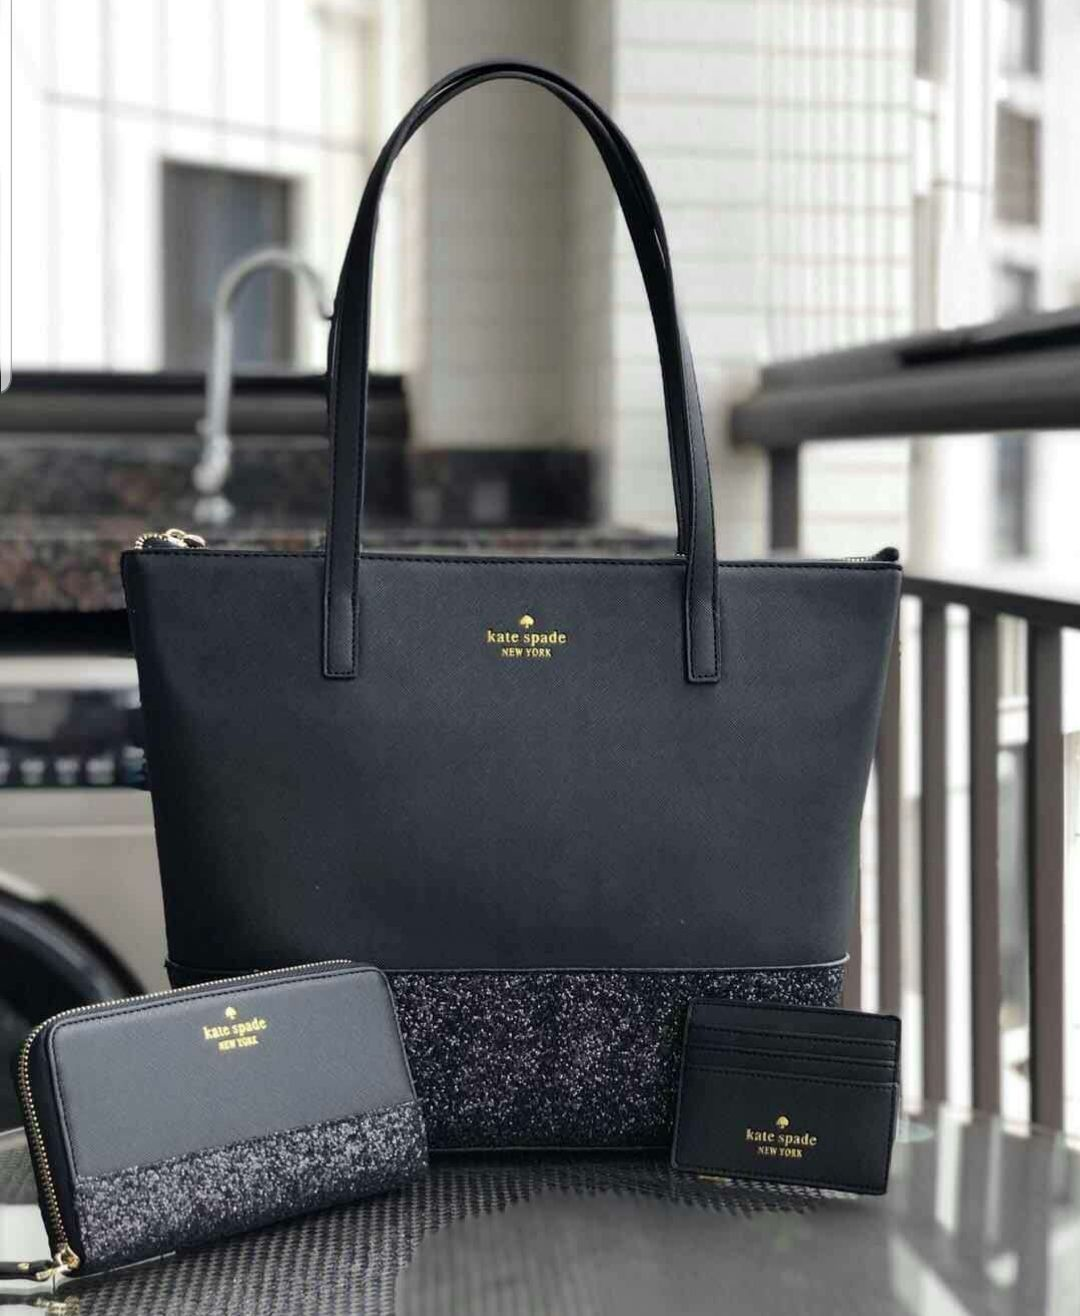 Kate Spade Glitter Tote 3 Piece Set Comes With Matching Cc Wallet And Small Bag.